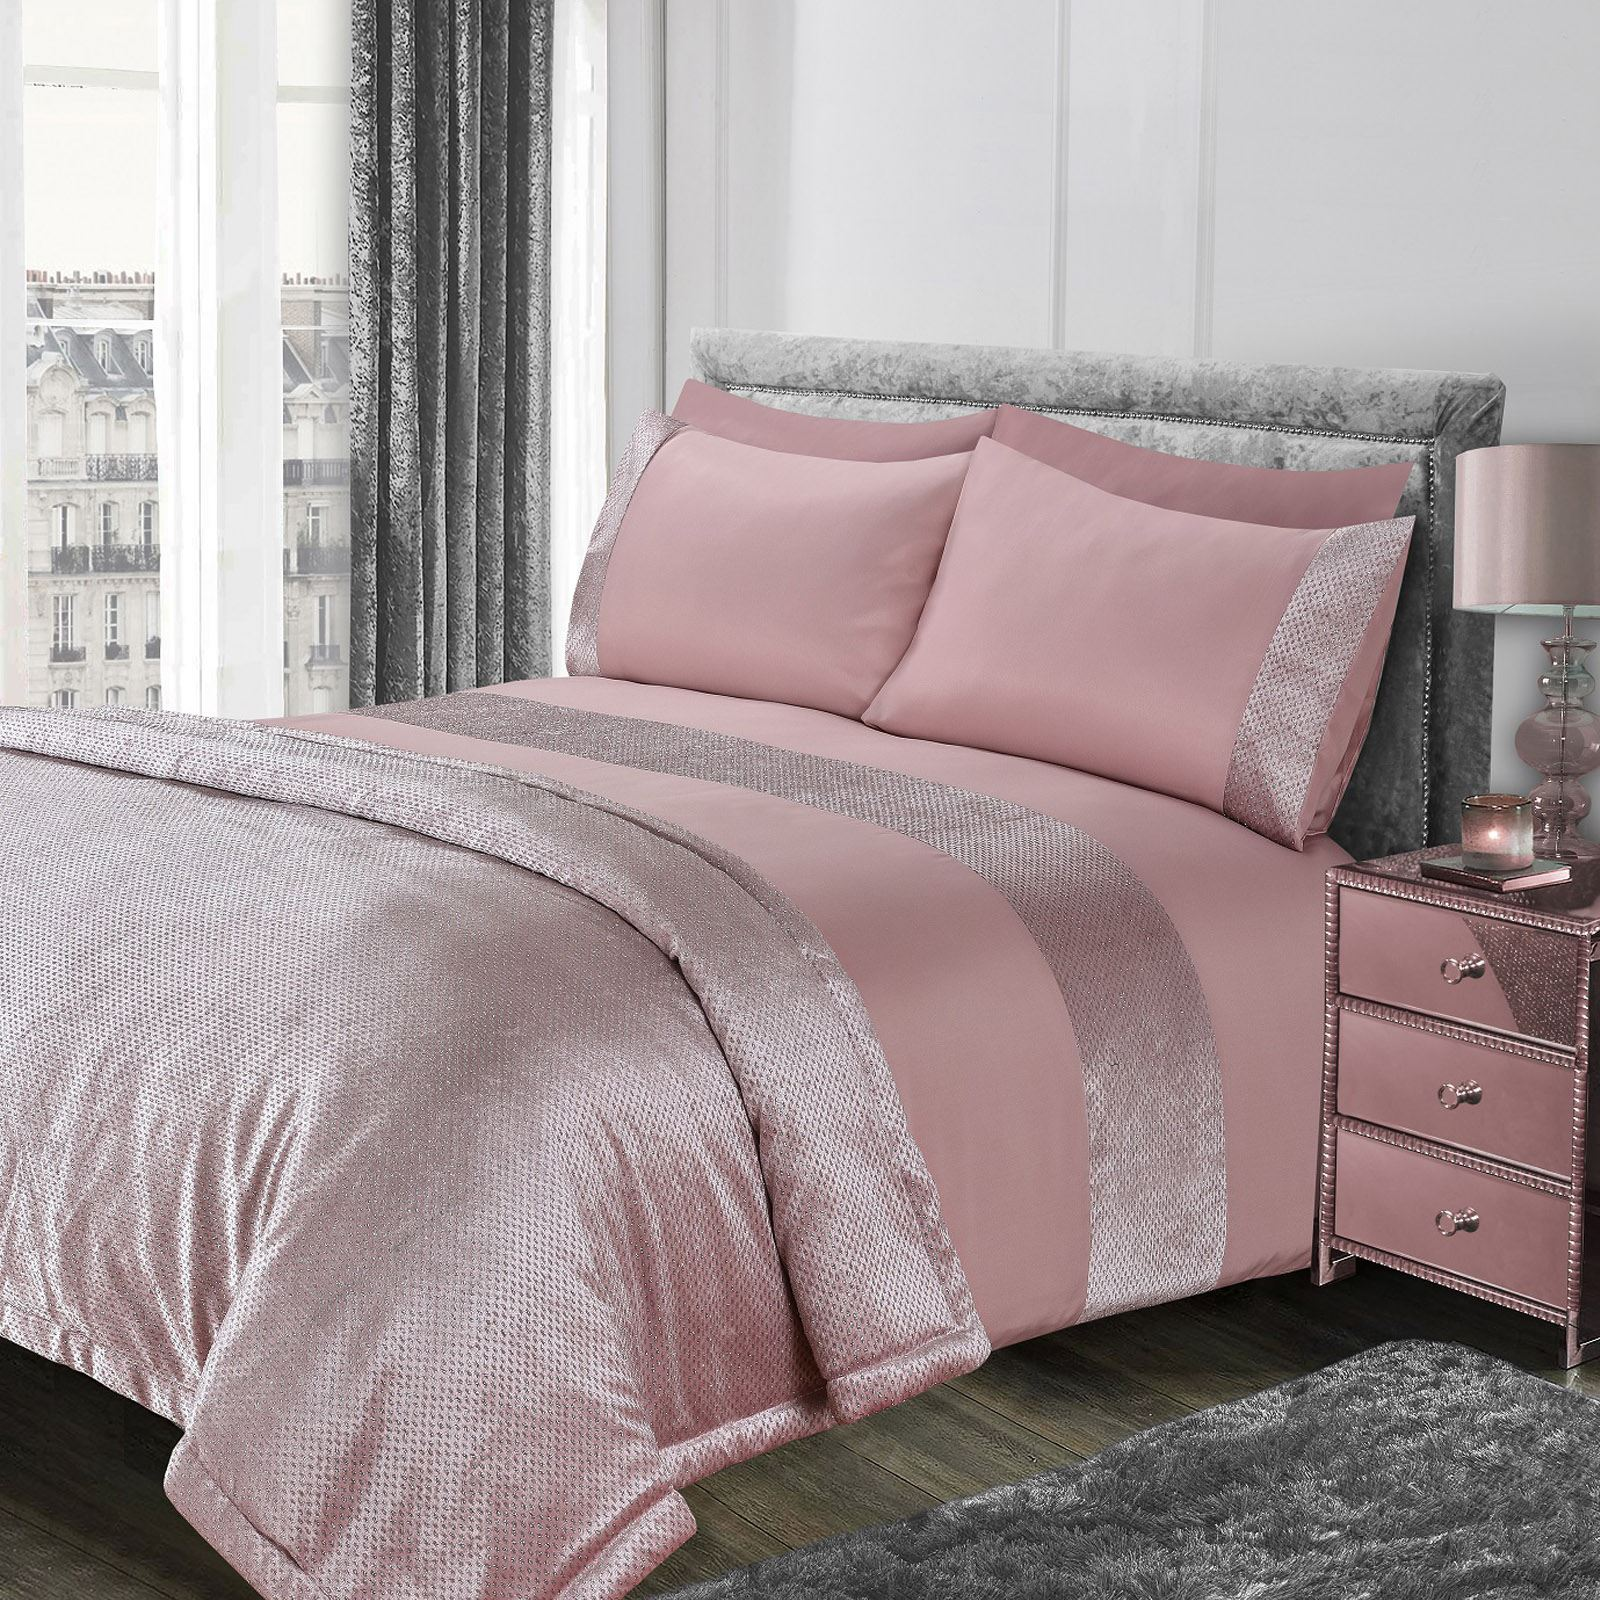 Sienna-Glitter-Duvet-Cover-with-Pillow-Case-Sparkle-Velvet-Bedding-Set-Grey-Pink thumbnail 8